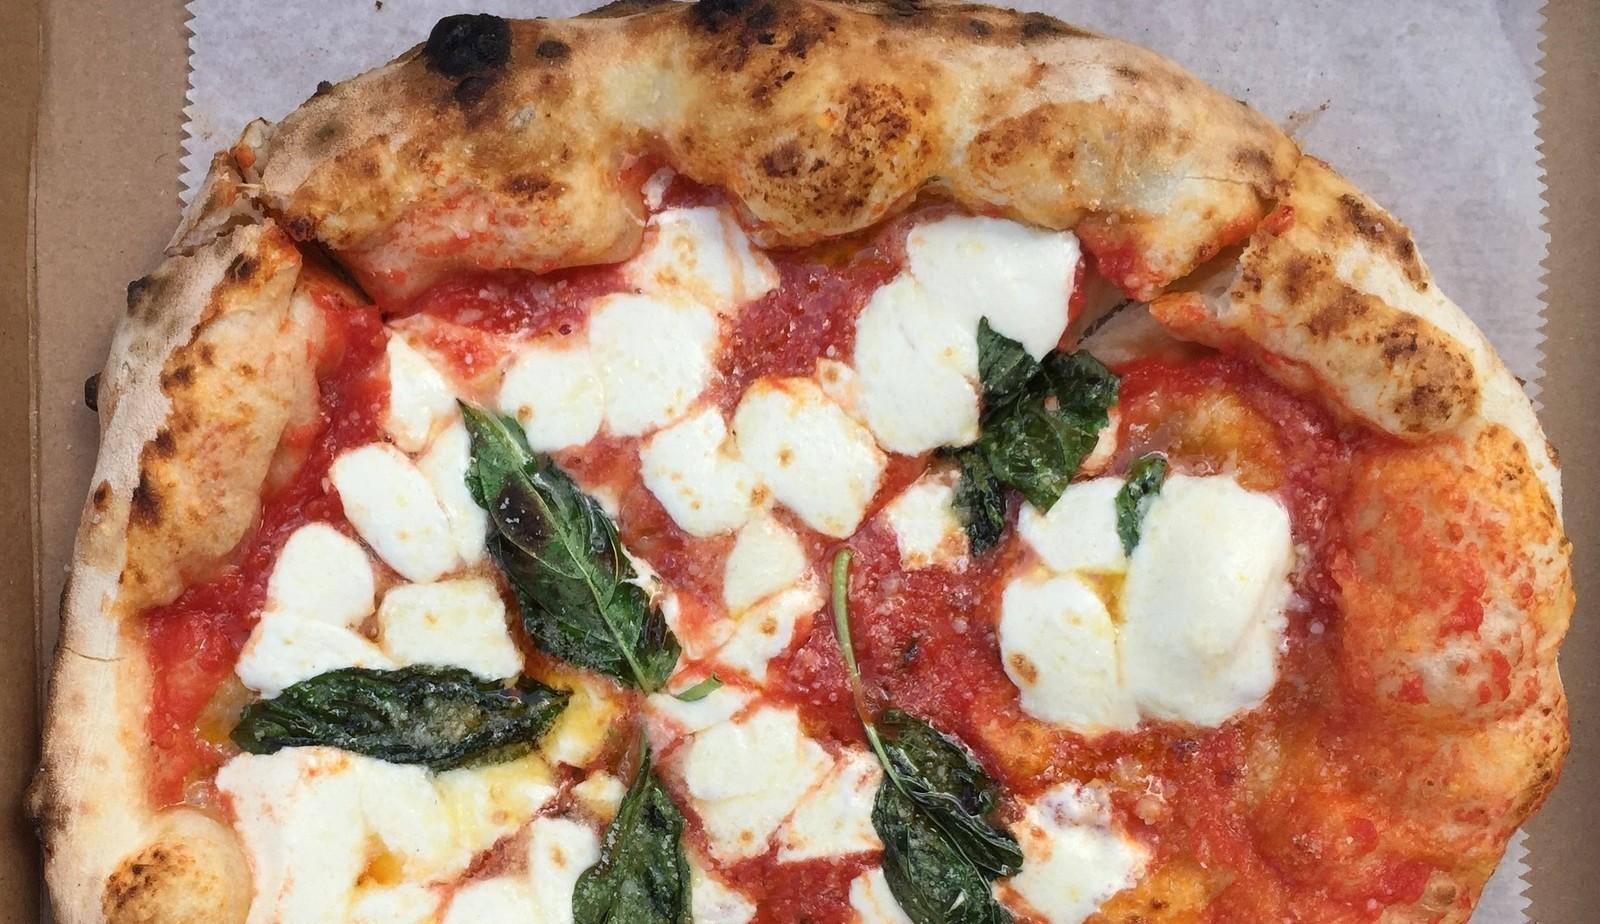 Margherita pizza by O.G Wood Fire truck. (Andrew Galarneau/Buffalo News)